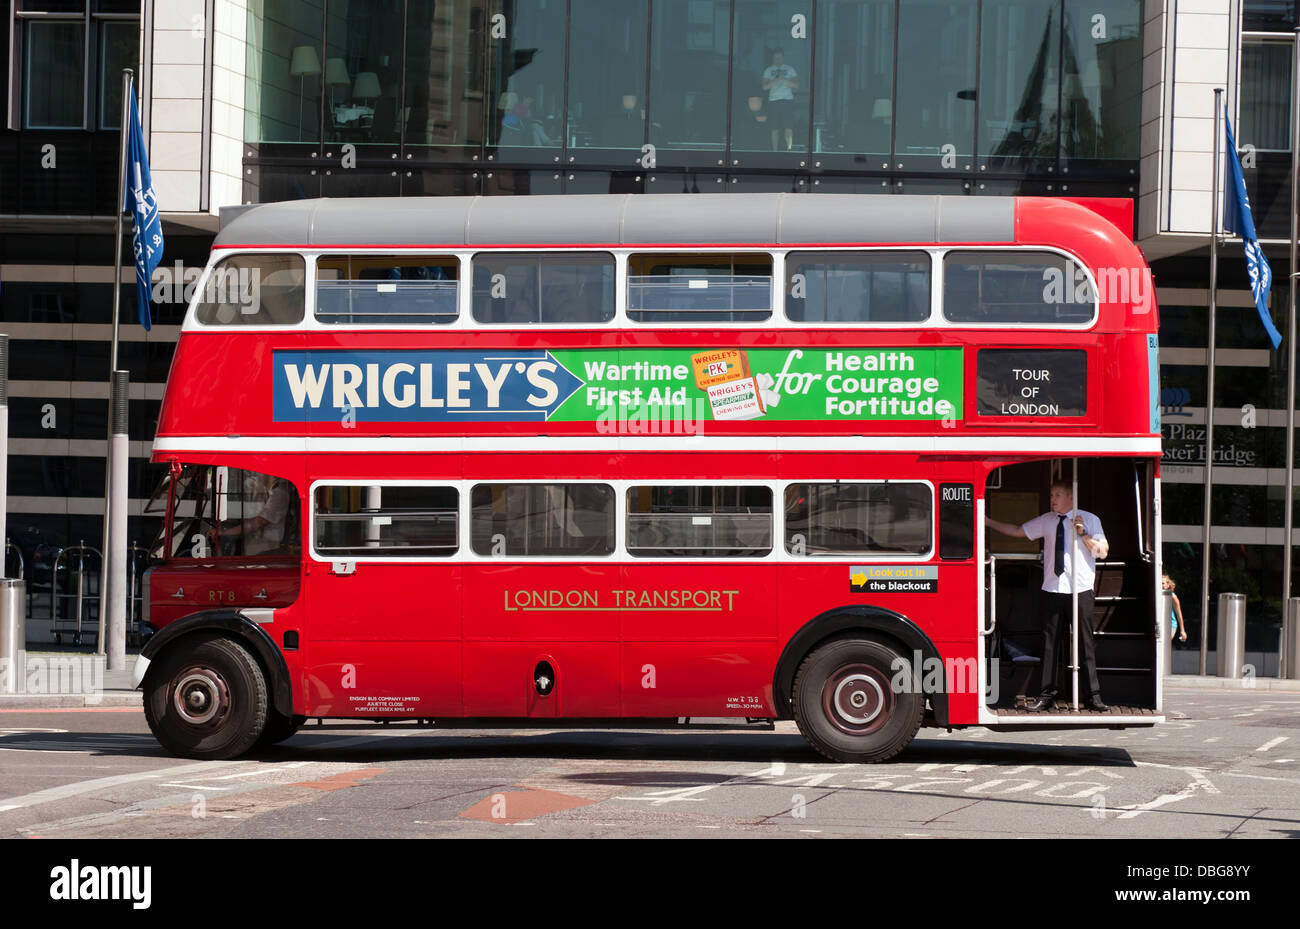 A restored pre-war, London RT bus, being used for tours of London, passes infront of the Park Plaza Hotel. - Stock Image